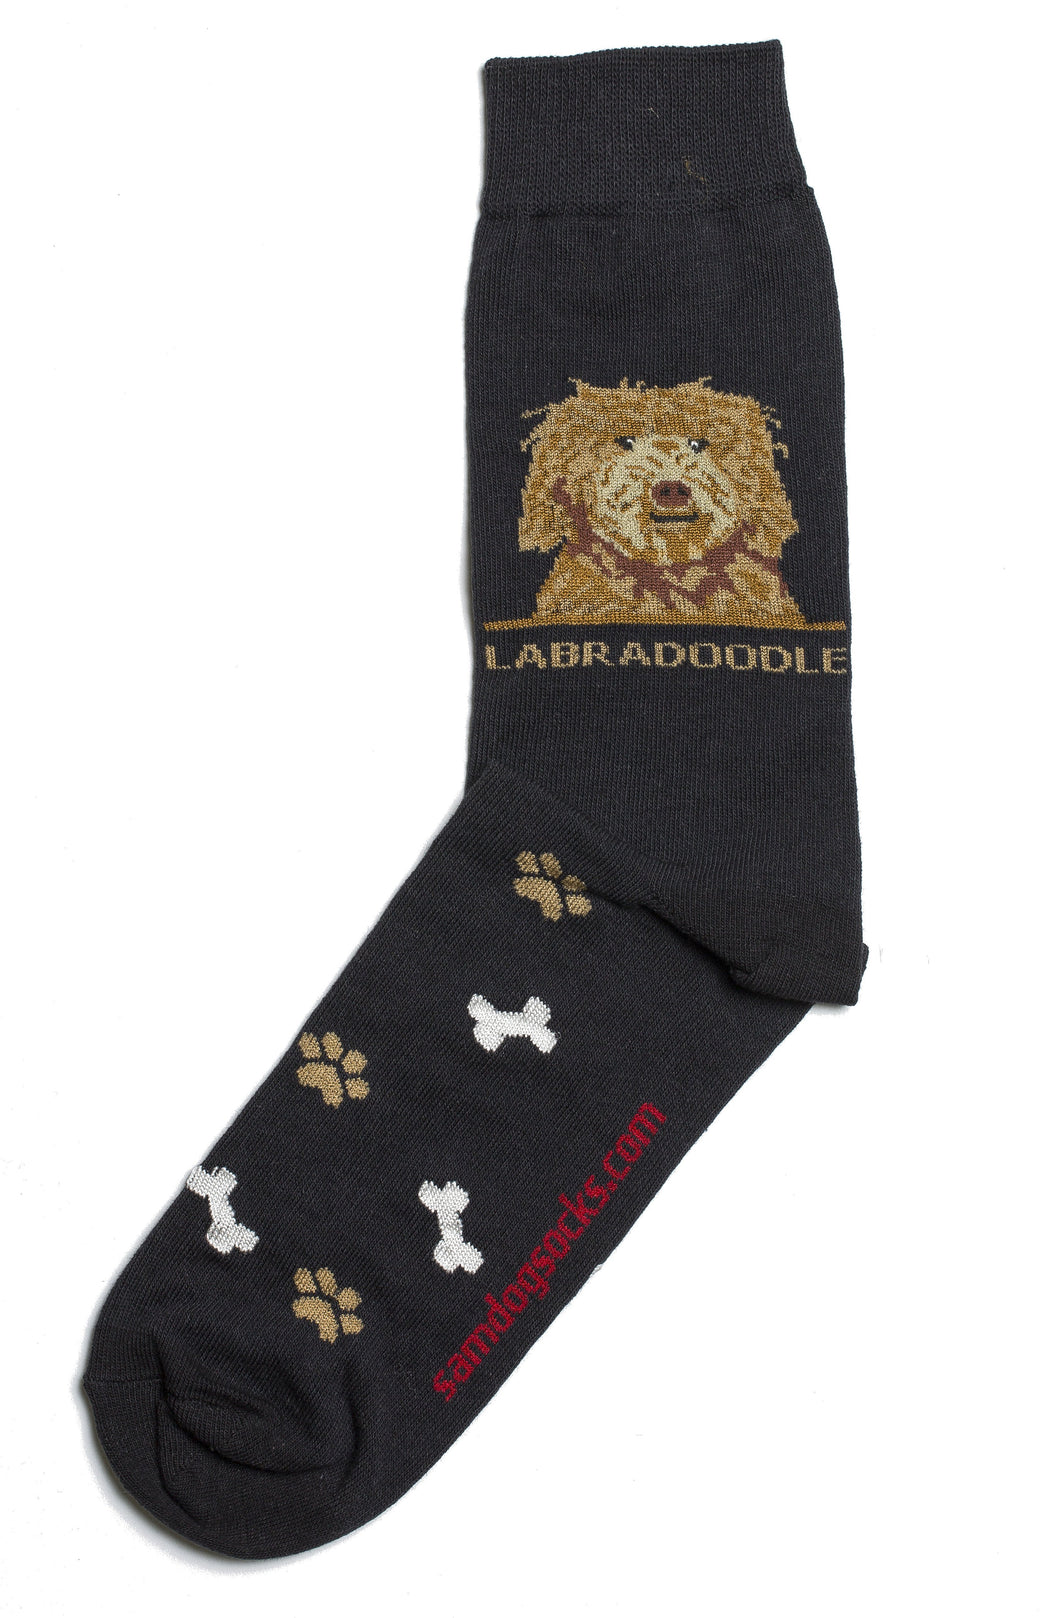 Labradoodle Brown Dog Socks Mens - samnoveltysocks.com